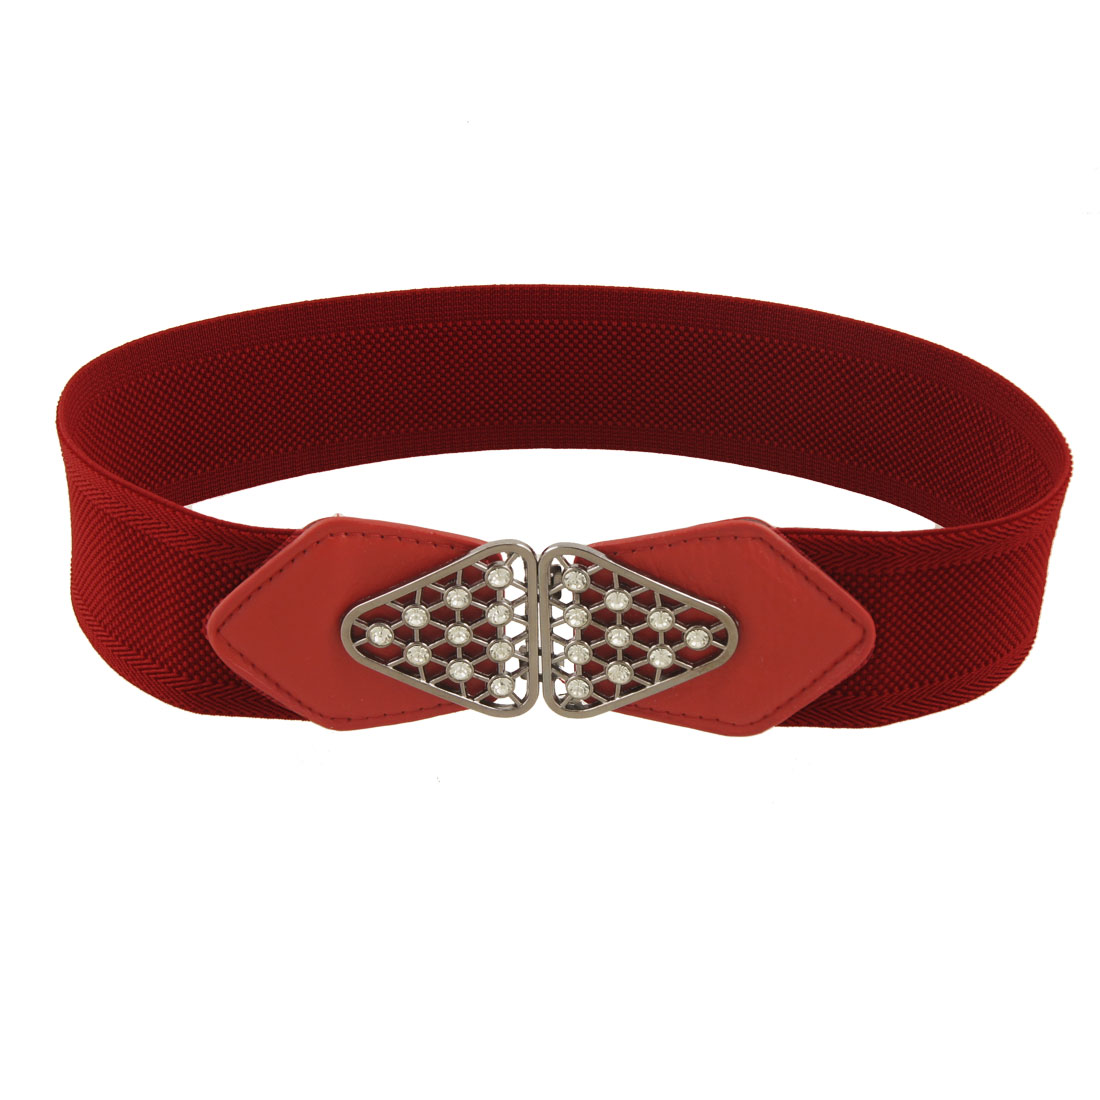 Ladies Lychee Pattern Rhinestone Inlaid Red Stretchy Cinch Belt